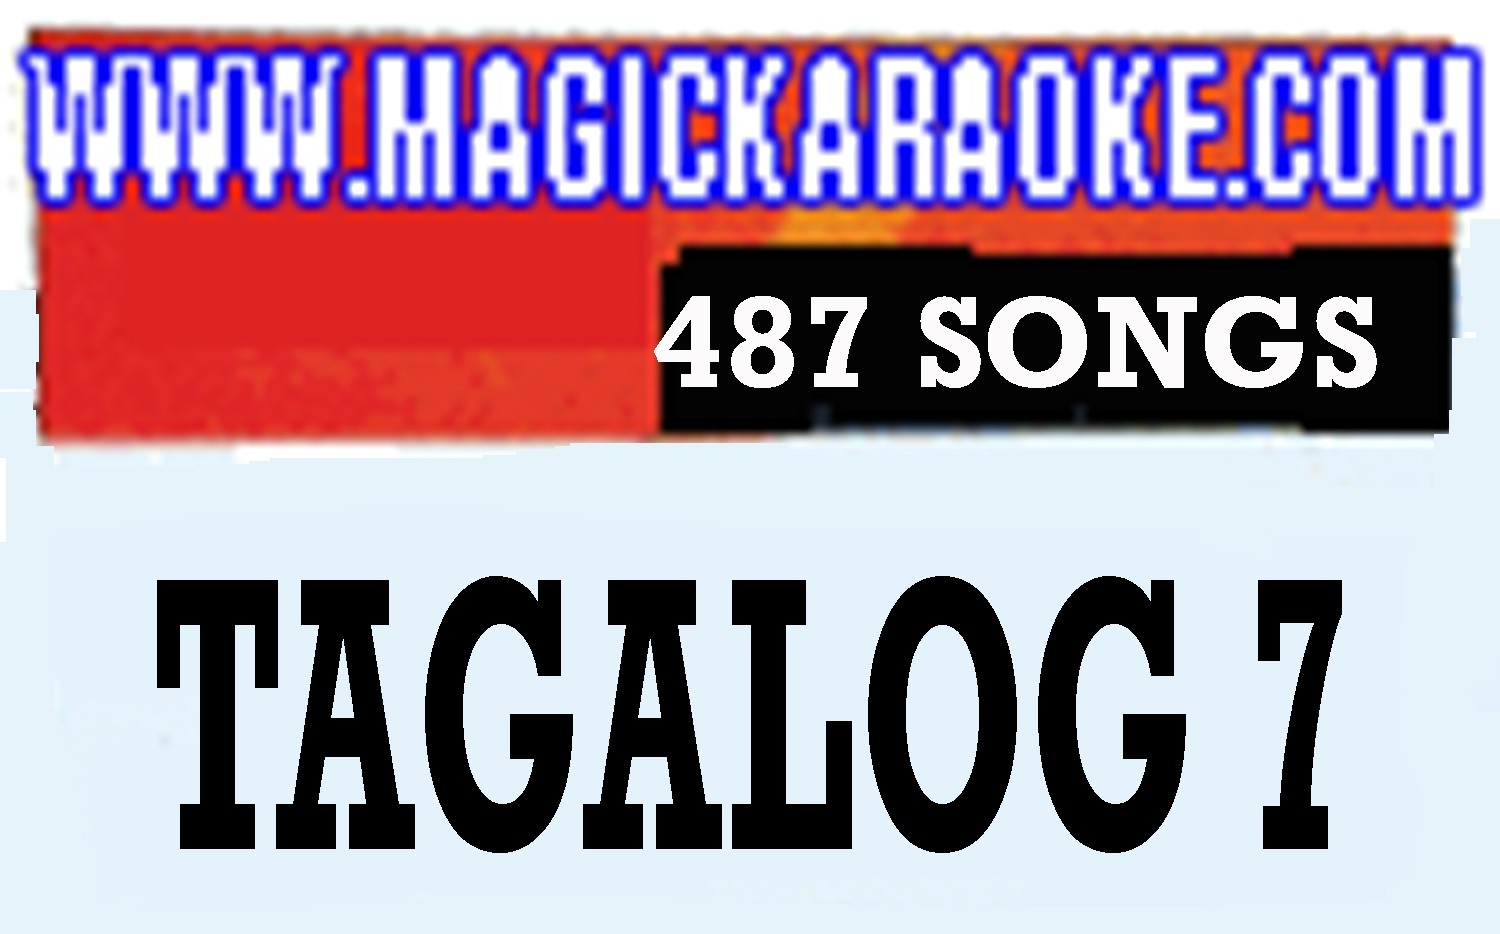 Magic Sing Tagalog 7 - Make an Offer and $ave More